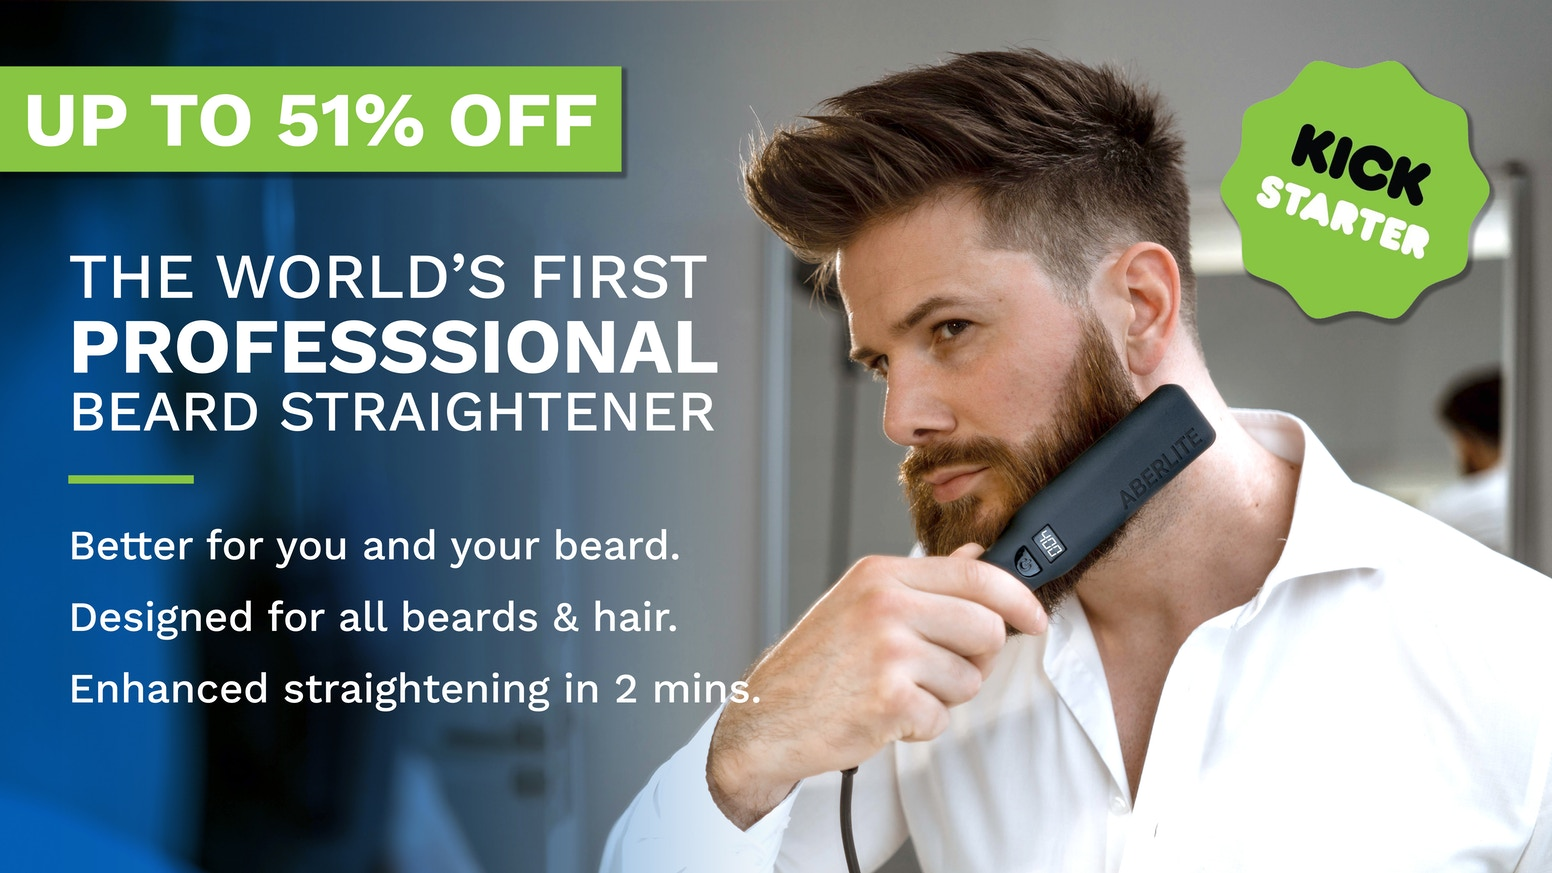 The most advanced purpose-built beard and hair straightening brush. Nail a neat beard in just 2 min.